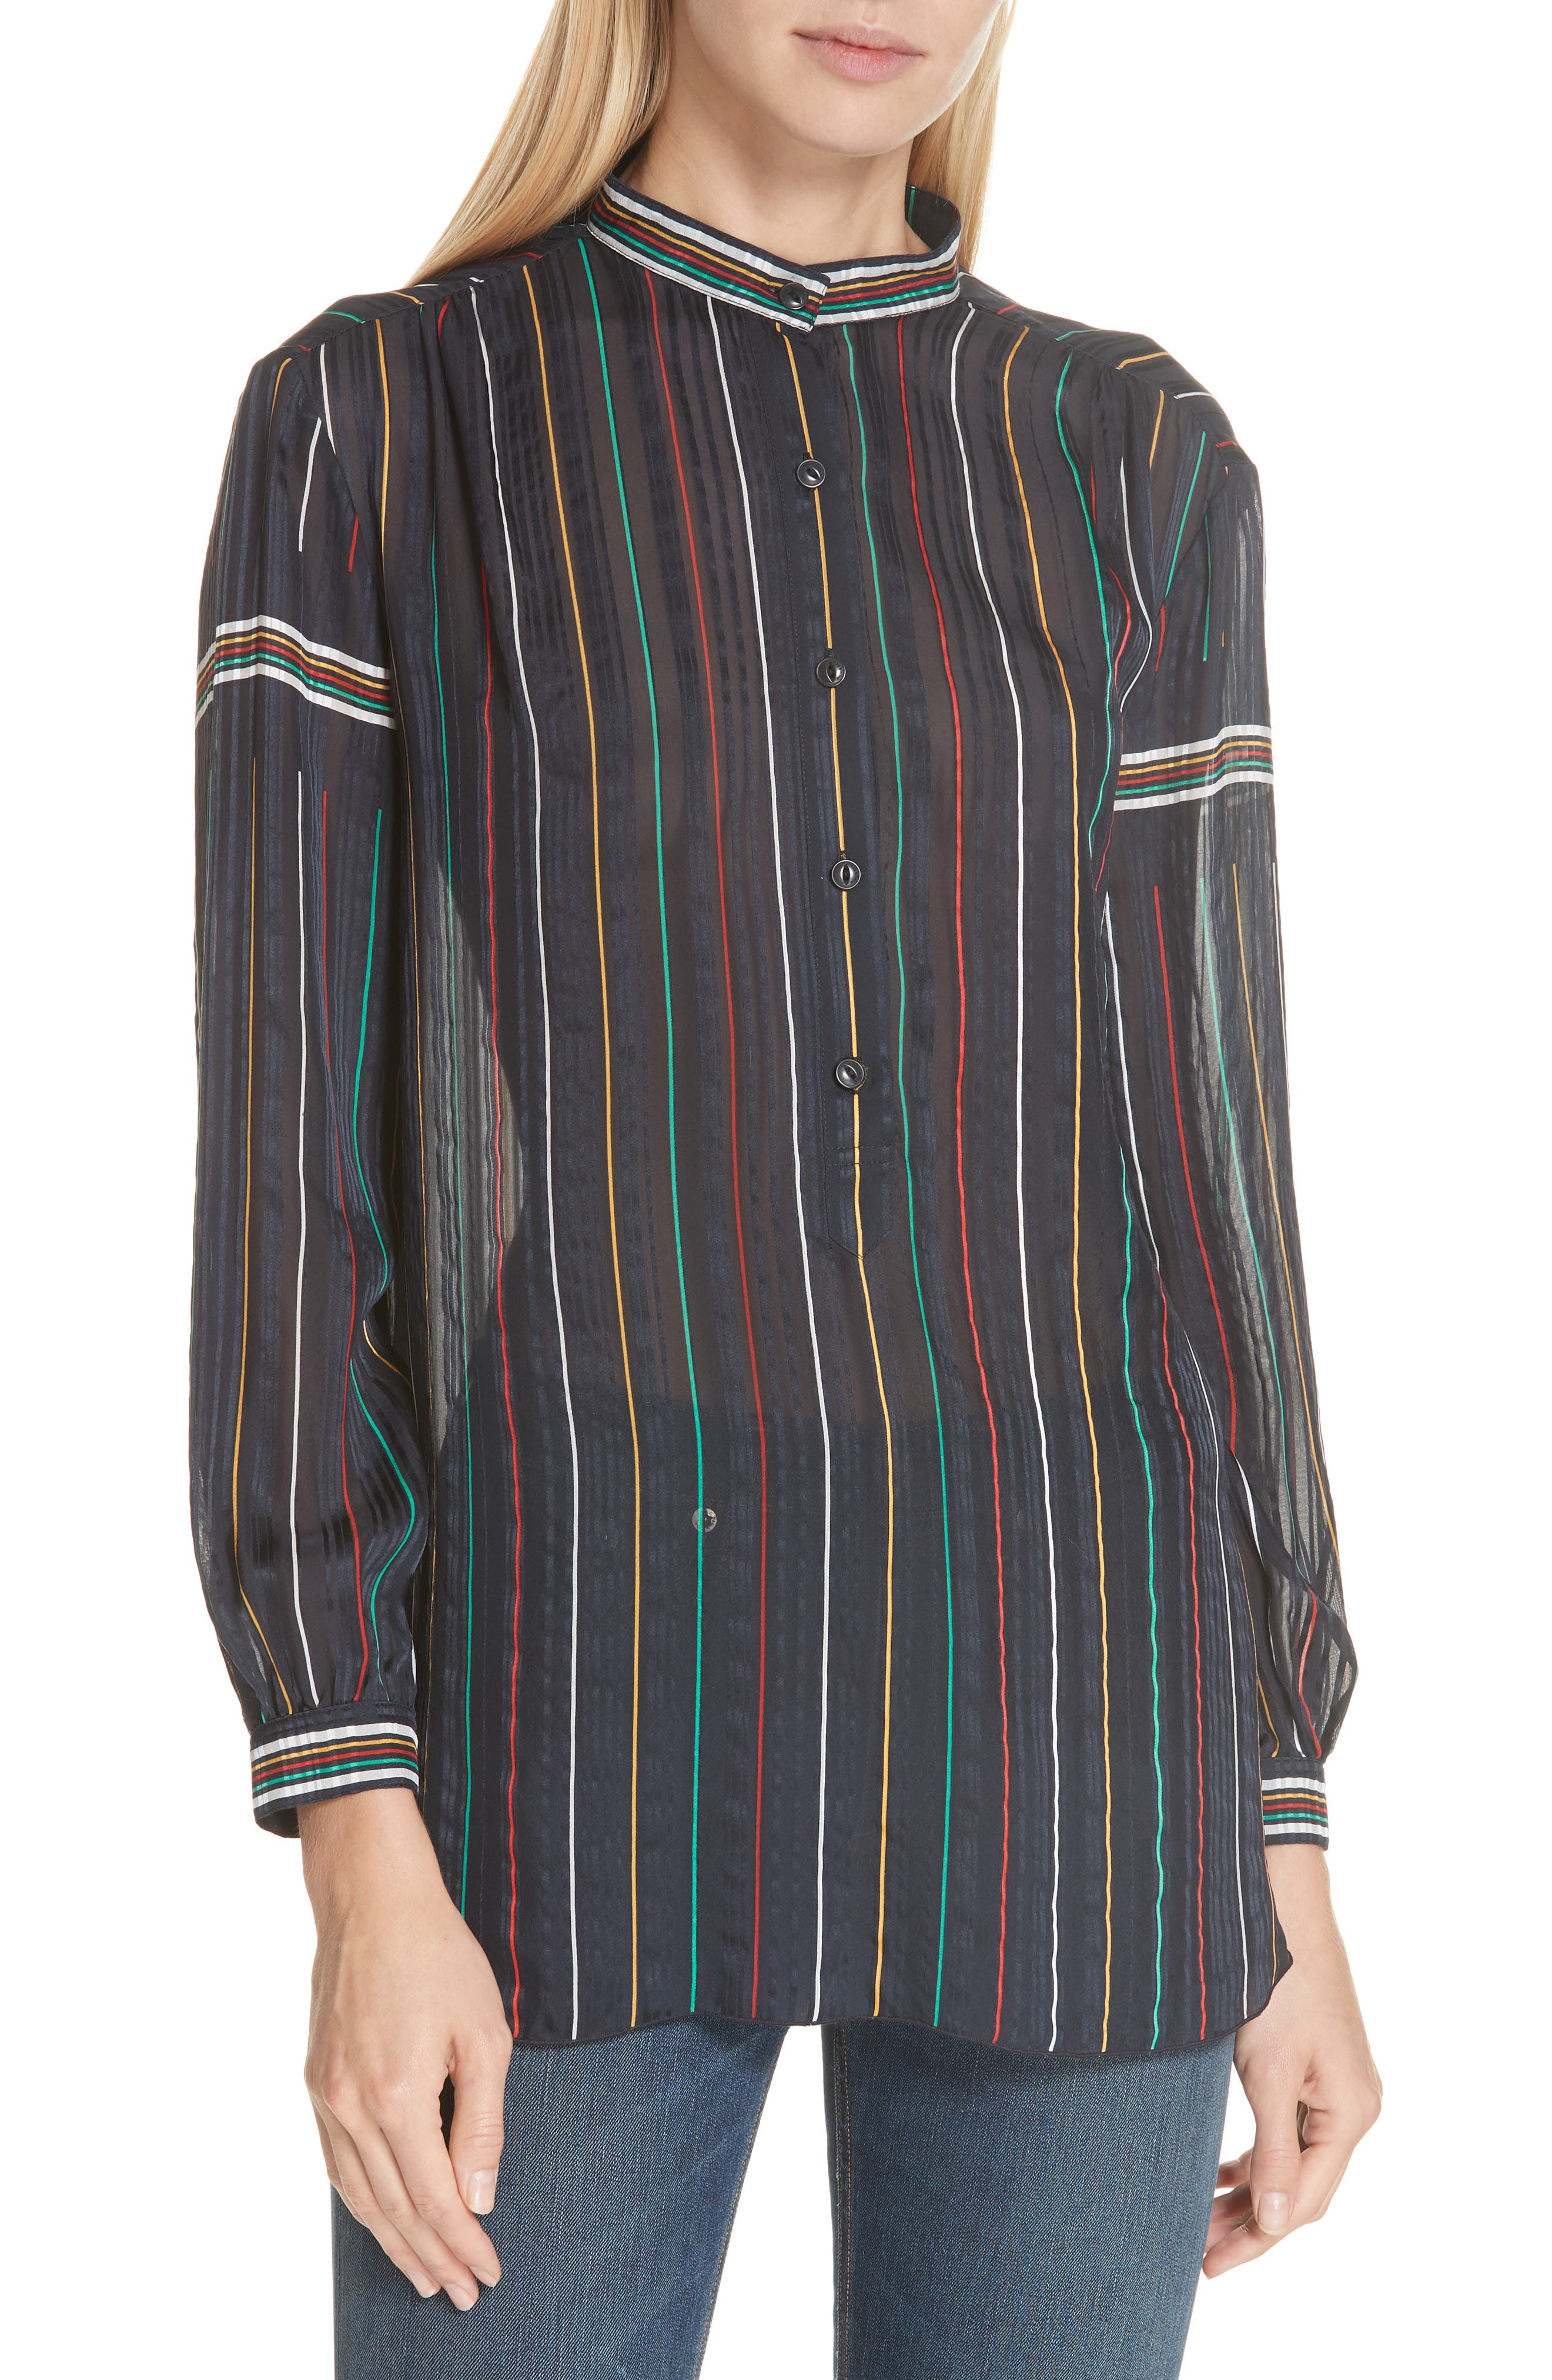 RAG & BONE, Austin Stripe Silk Shirt, Main thumbnail 1, color, DENIM BLUE